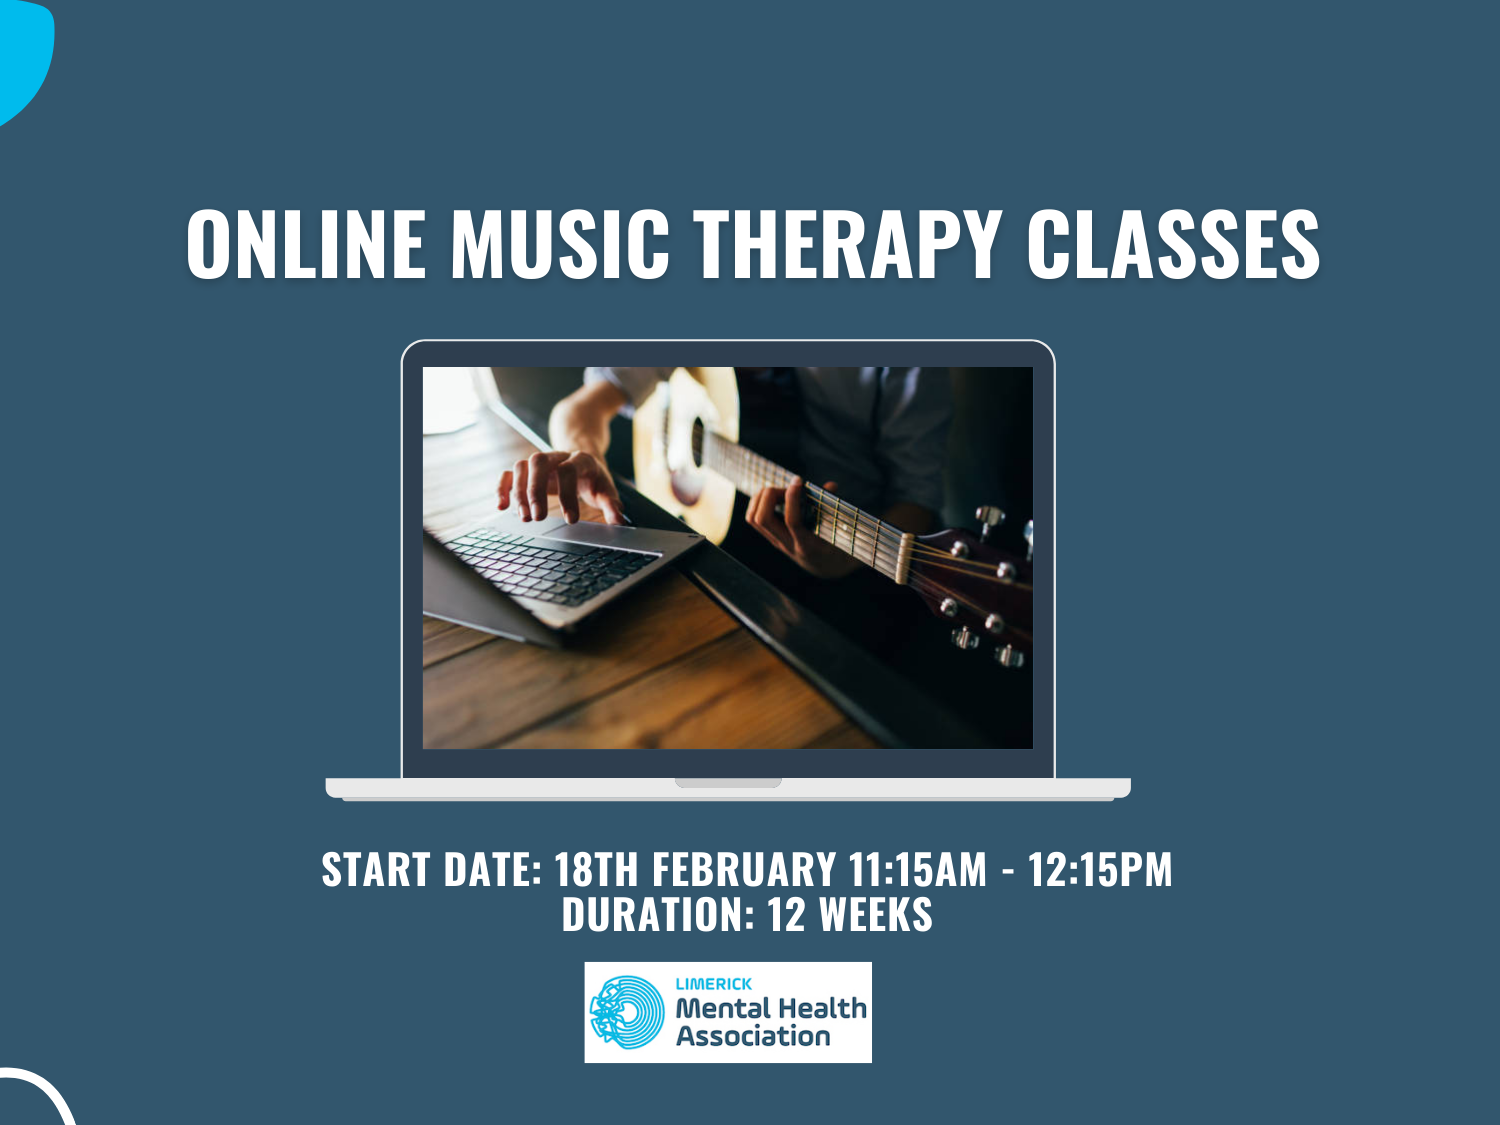 Online Music Therapy Classes